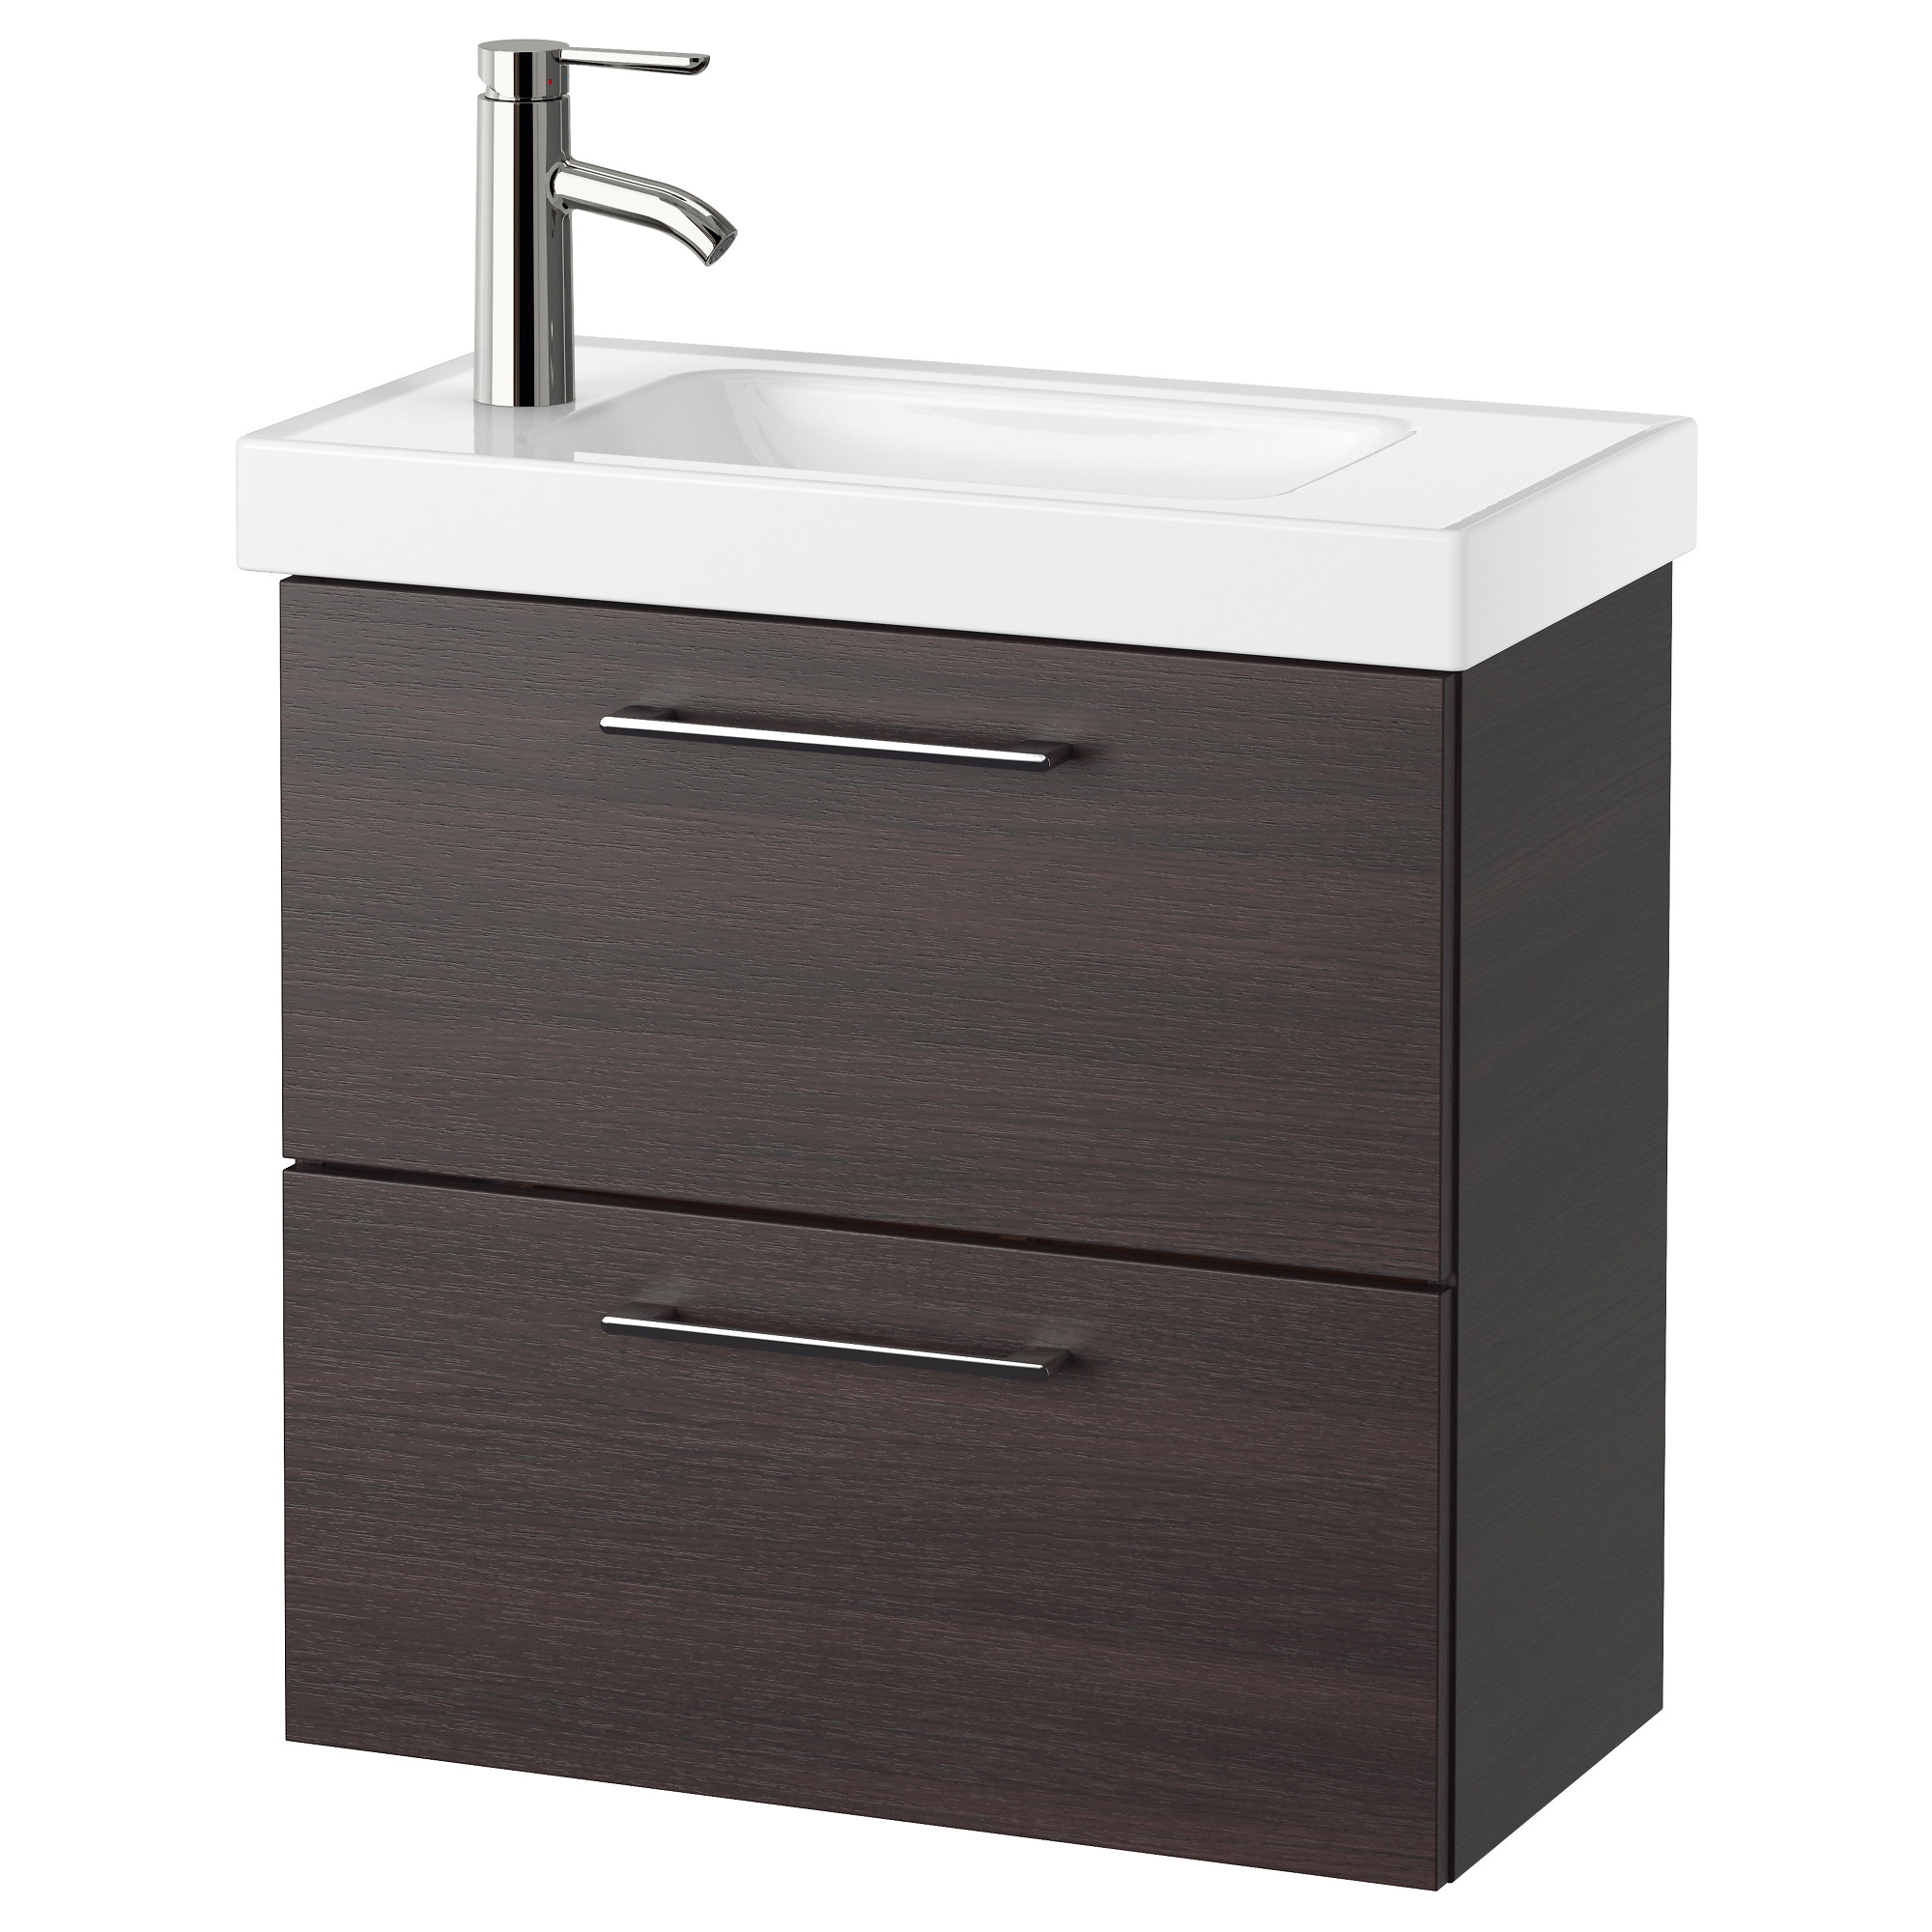 24 in bathroom vanity with sink. GODMORGON  HAGAVIKEN sink cabinet with 2 drawers black brown Width 24 3 Bathroom Vanities Countertops IKEA